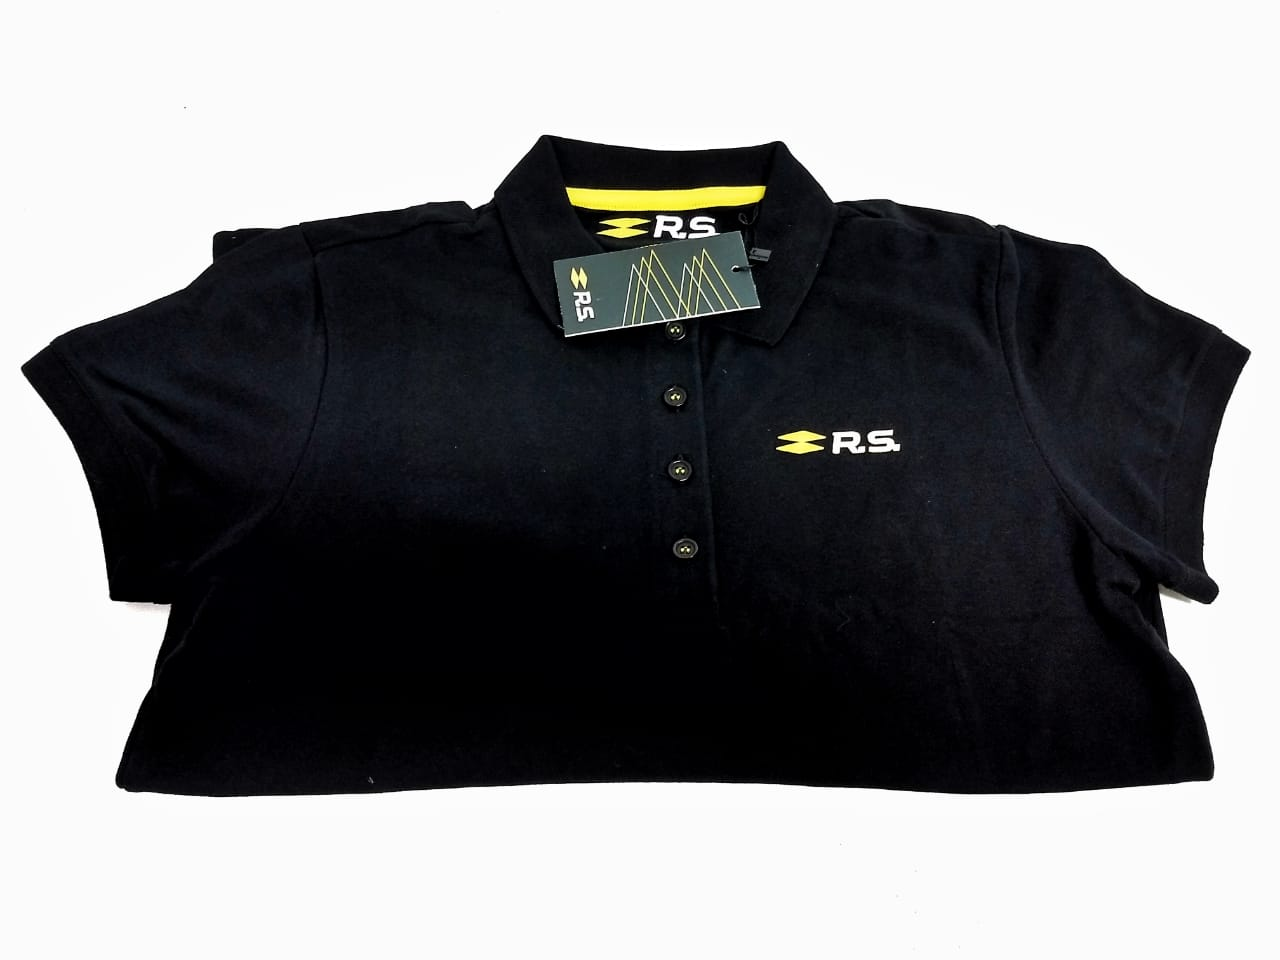 Camisa Polo M New Graphic Rs Feminino - Camiseta - Preto - S